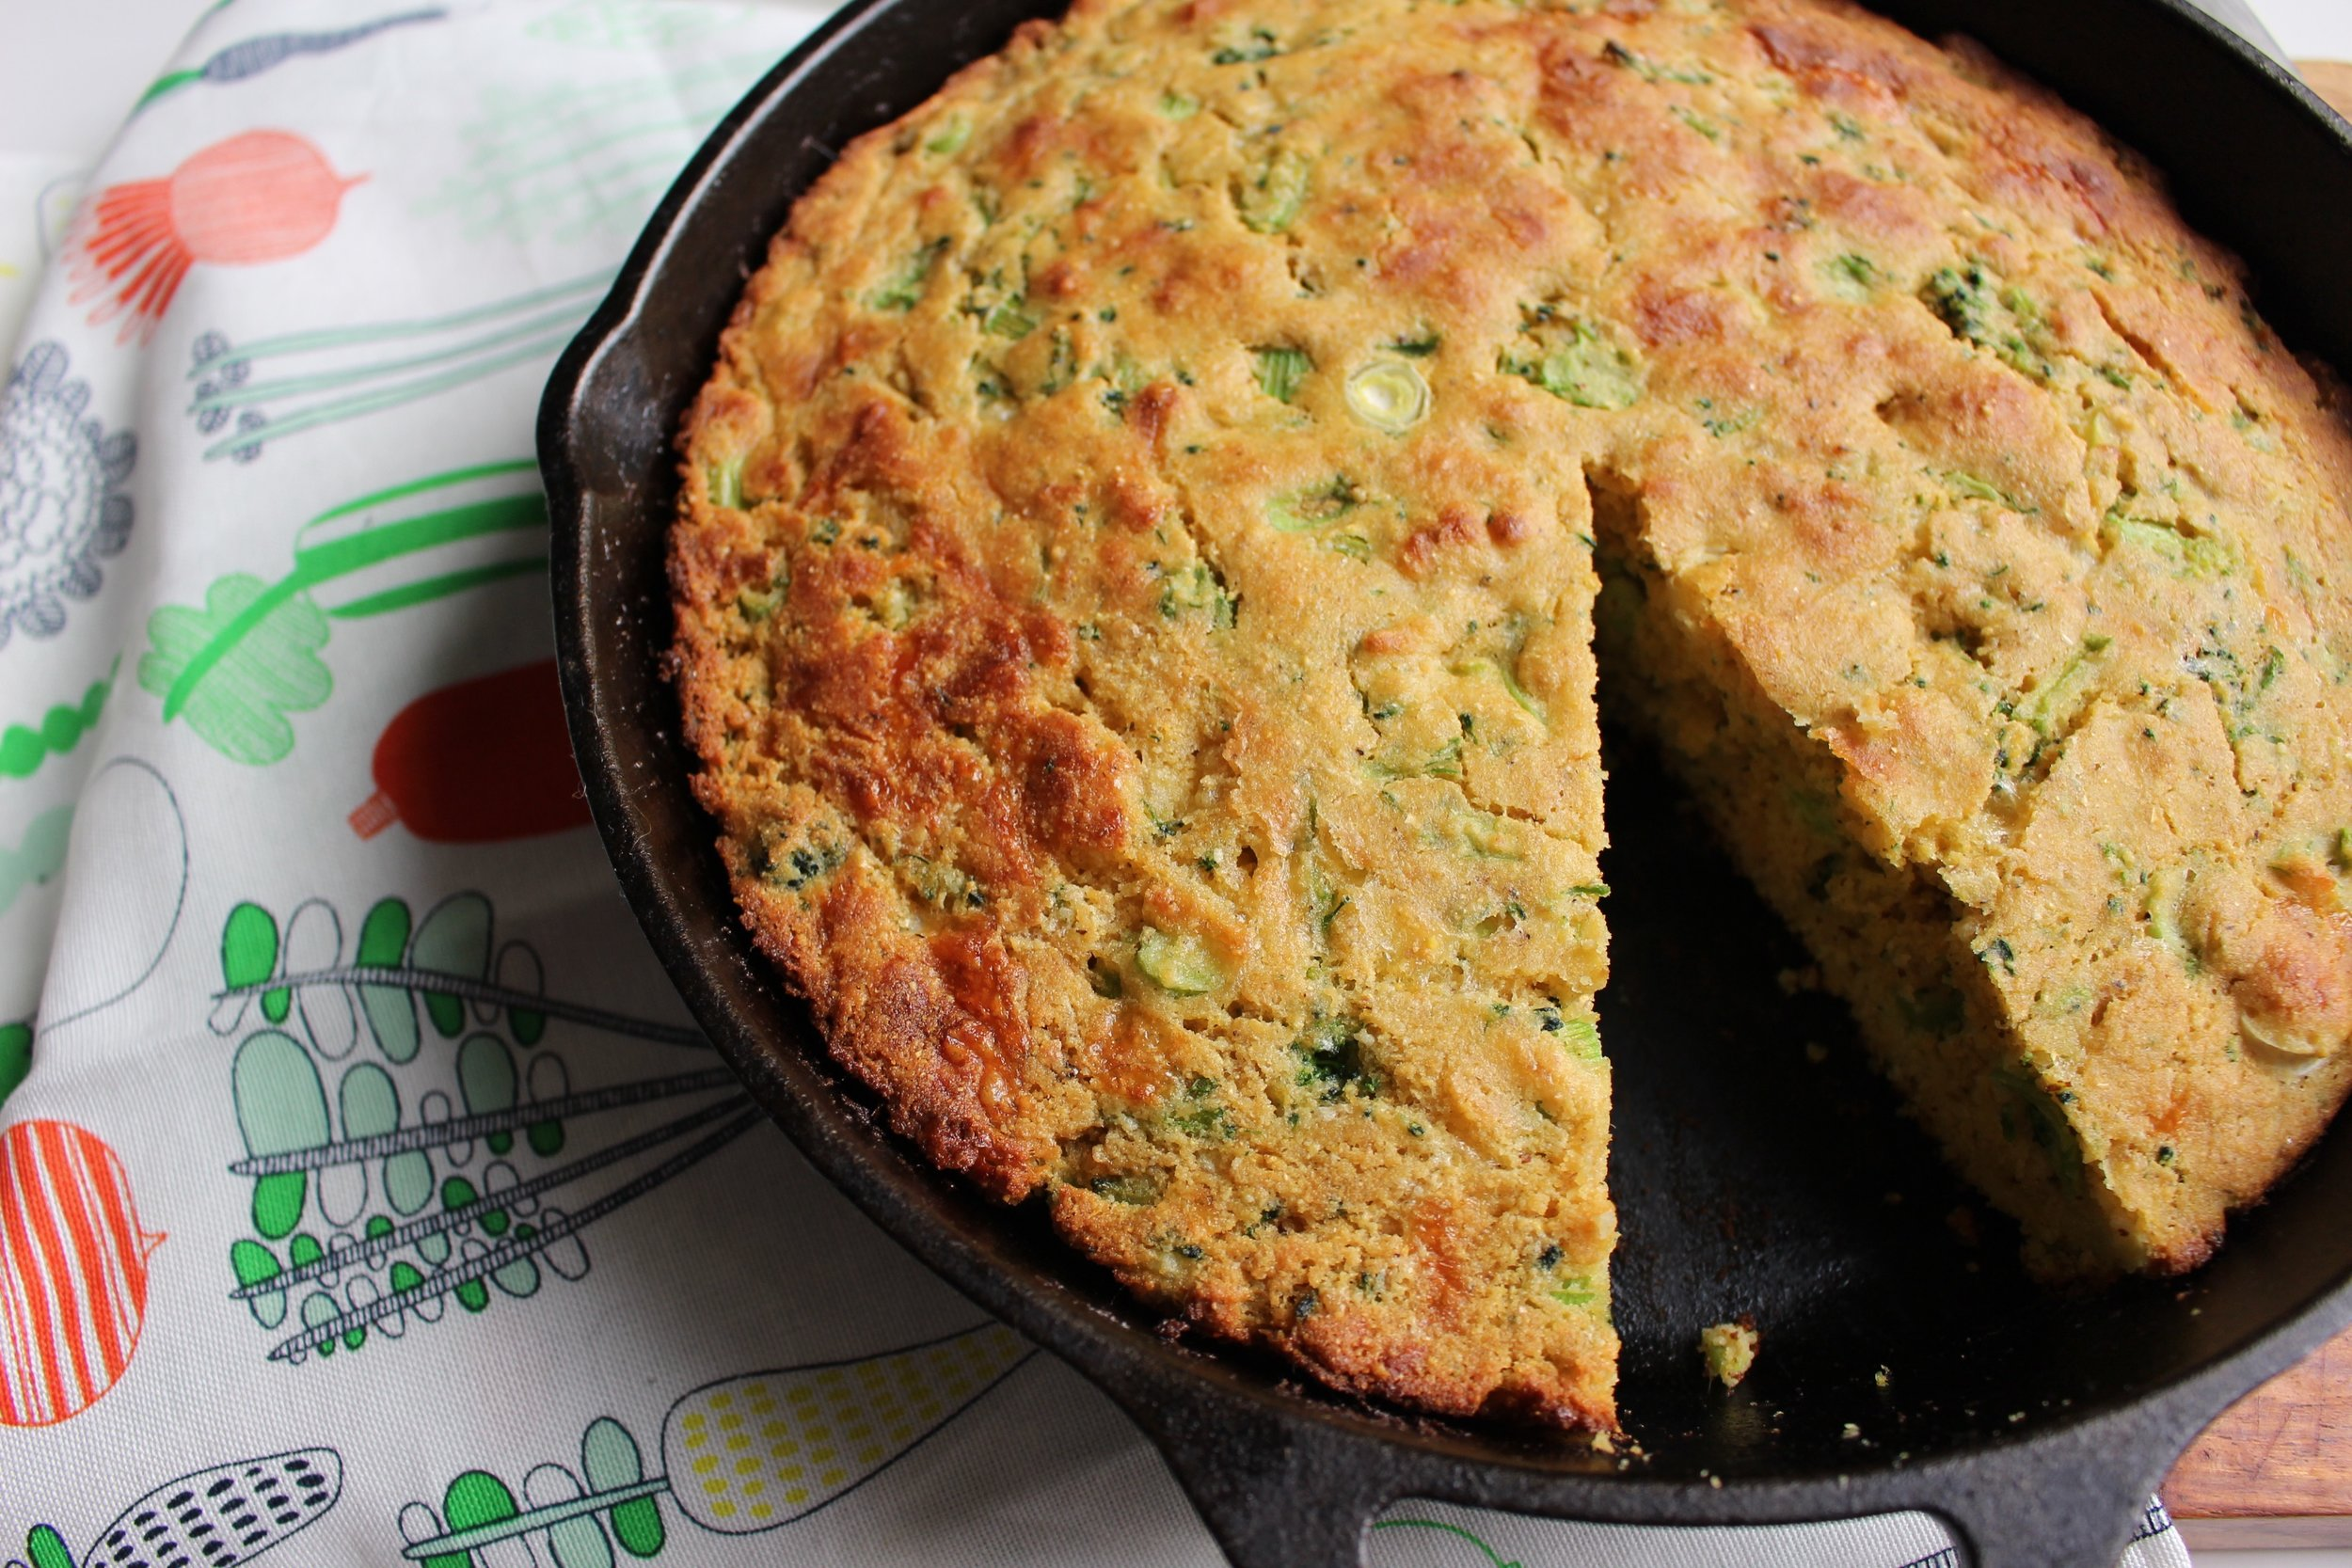 Broccoli and cheddar corn bread | Me & The Moose. Sneak in some more vegetables in your corn bread. #meandthemoose #cornbread #cornbreadrecipes #broccoliandcheddar #quickbread #hiddenveggies #sidedishes #toddlerrecipes